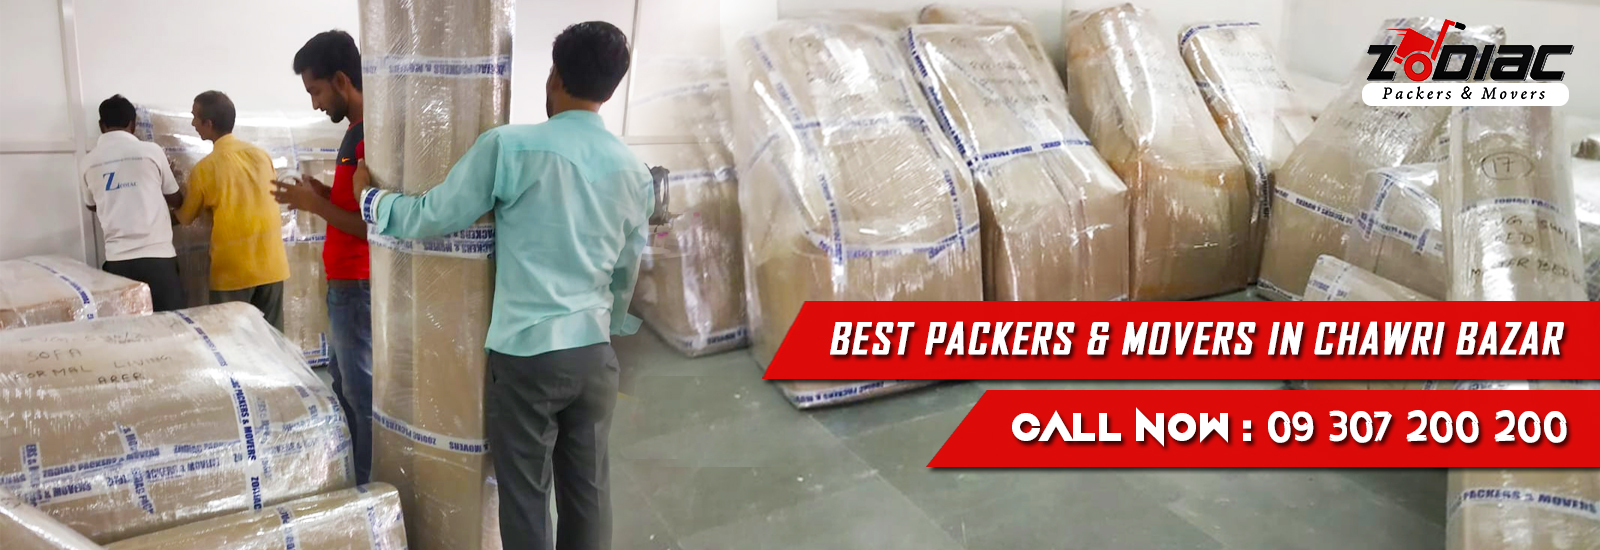 Packers and Movers in Chawri Bazar